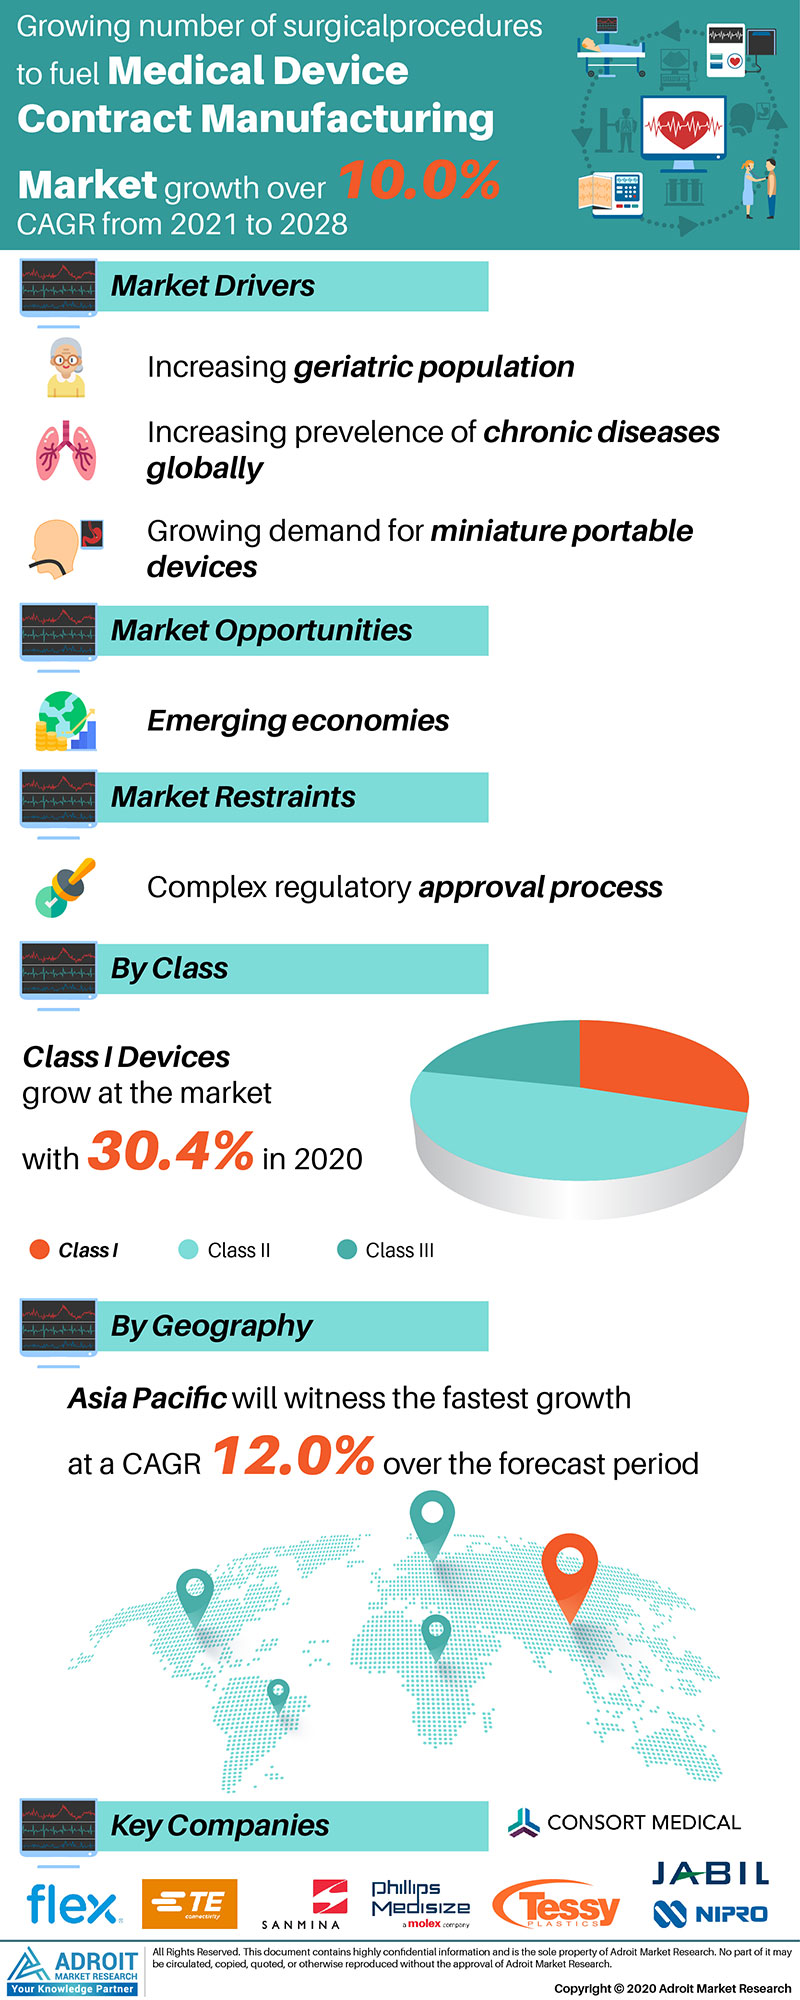 https://www.adroitmarketresearch.com/industry-reports/medical-device-contract-manufacturing-market Market by Material, Application, and Region, Global Forecasts 2018 to 2025